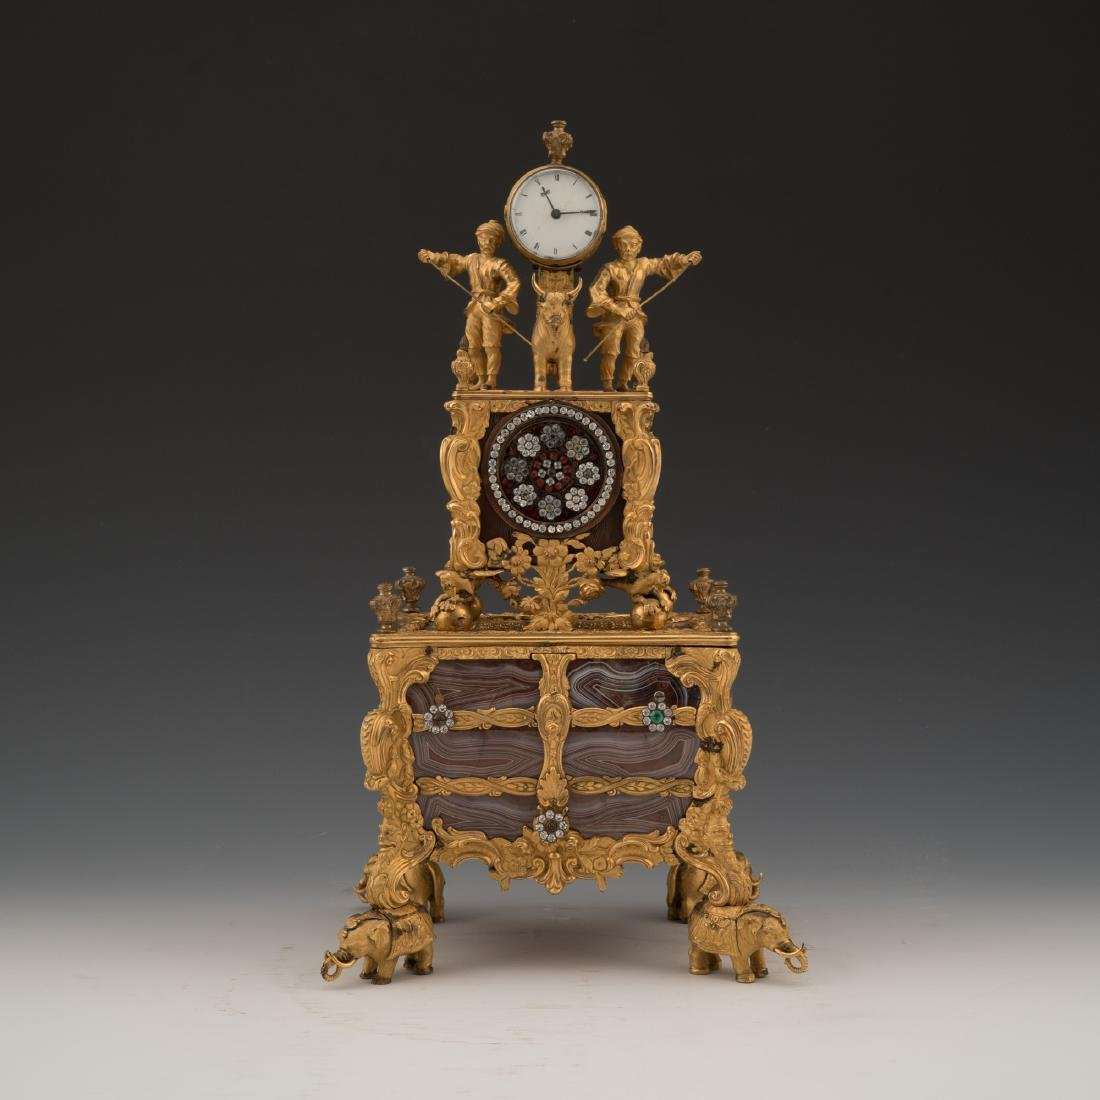 GEORGE III TIME MUSIC PENDULUM SIGNATURE OF THOMAS